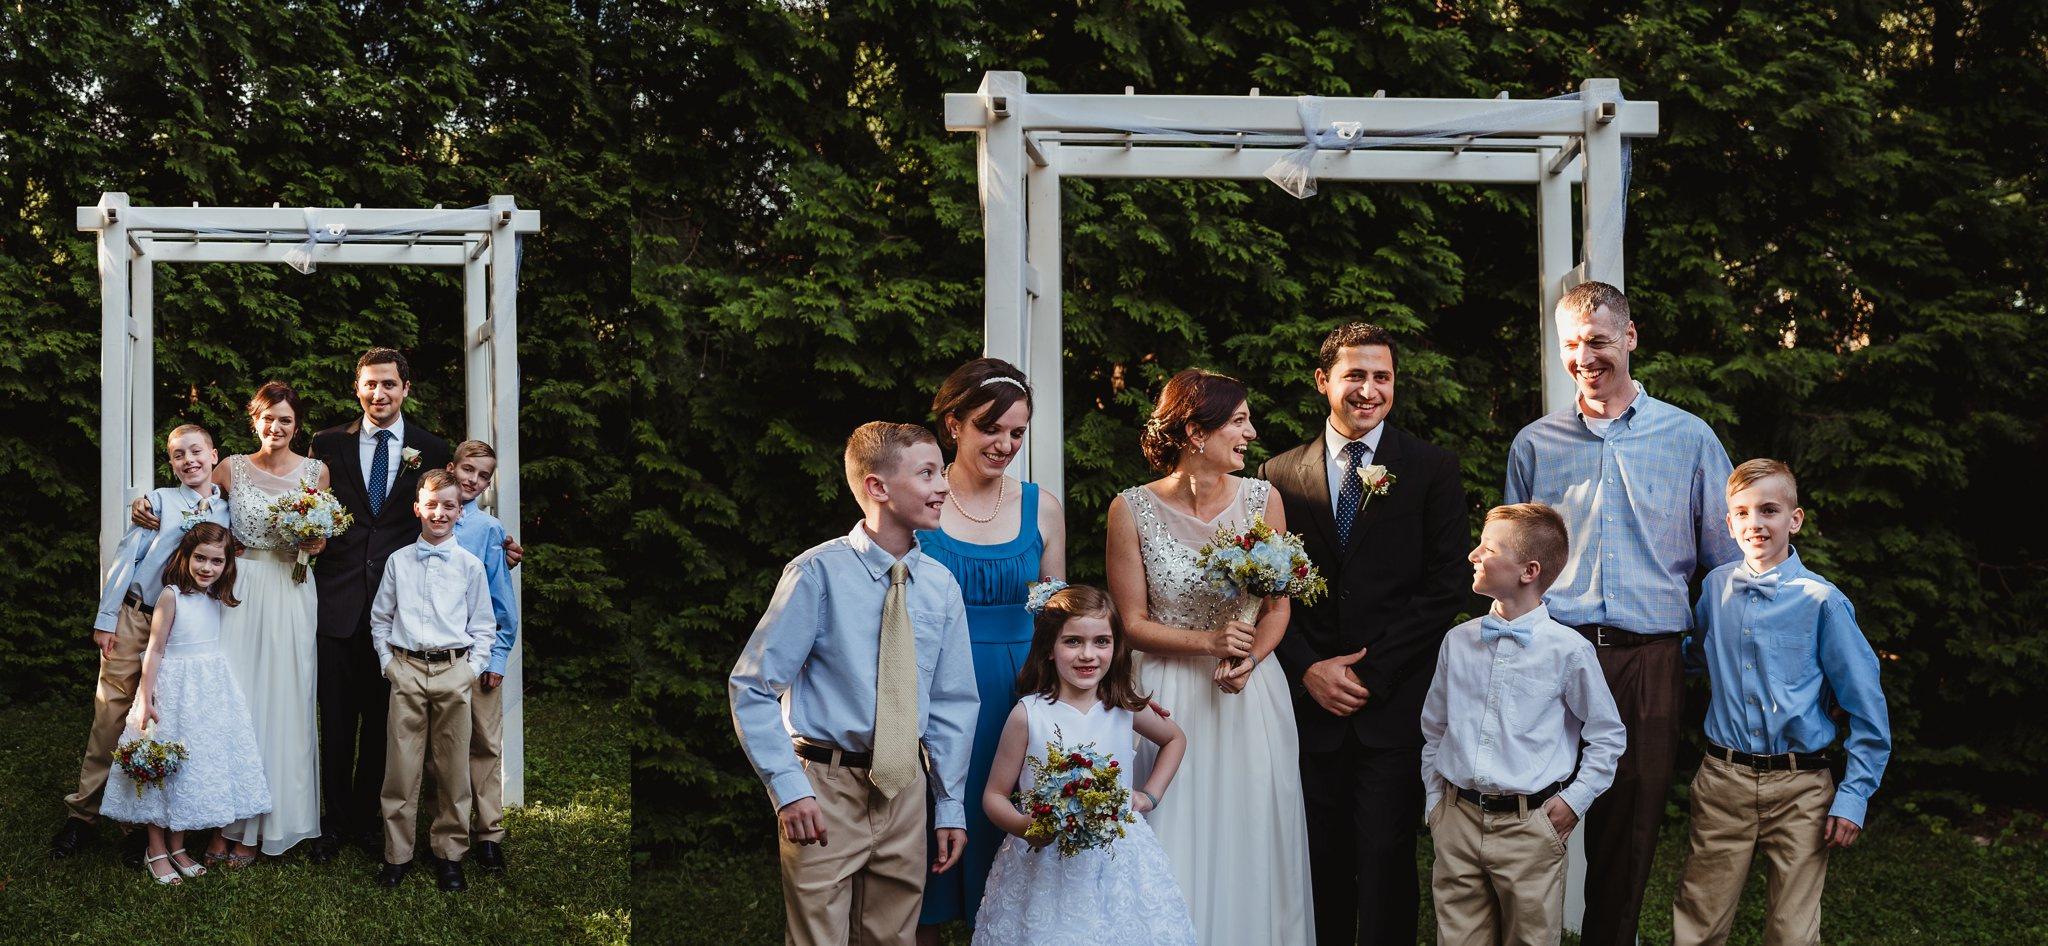 The bride and groom took pictures with her sister after their intimate wedding ceremony that took place in their backyard in downtown Raleigh, North Carolina, photo by Rose Trail Images.